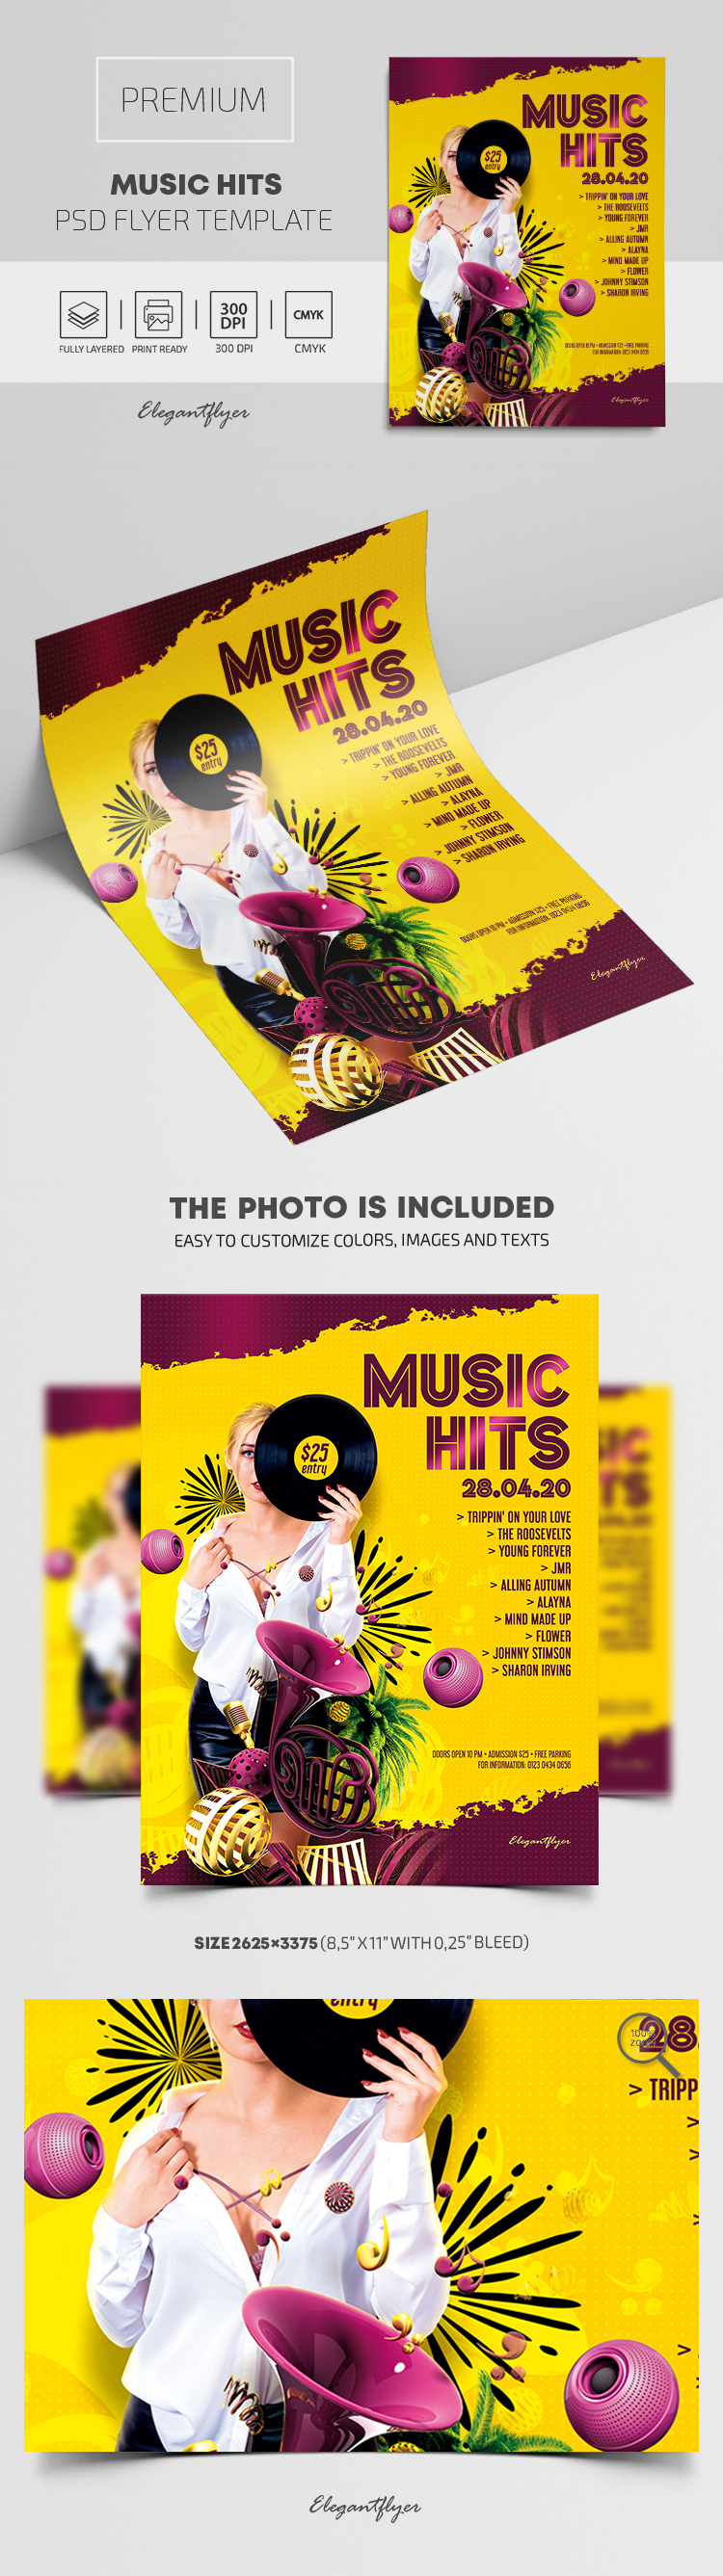 Music Hits – Premium PSD Flyer Template